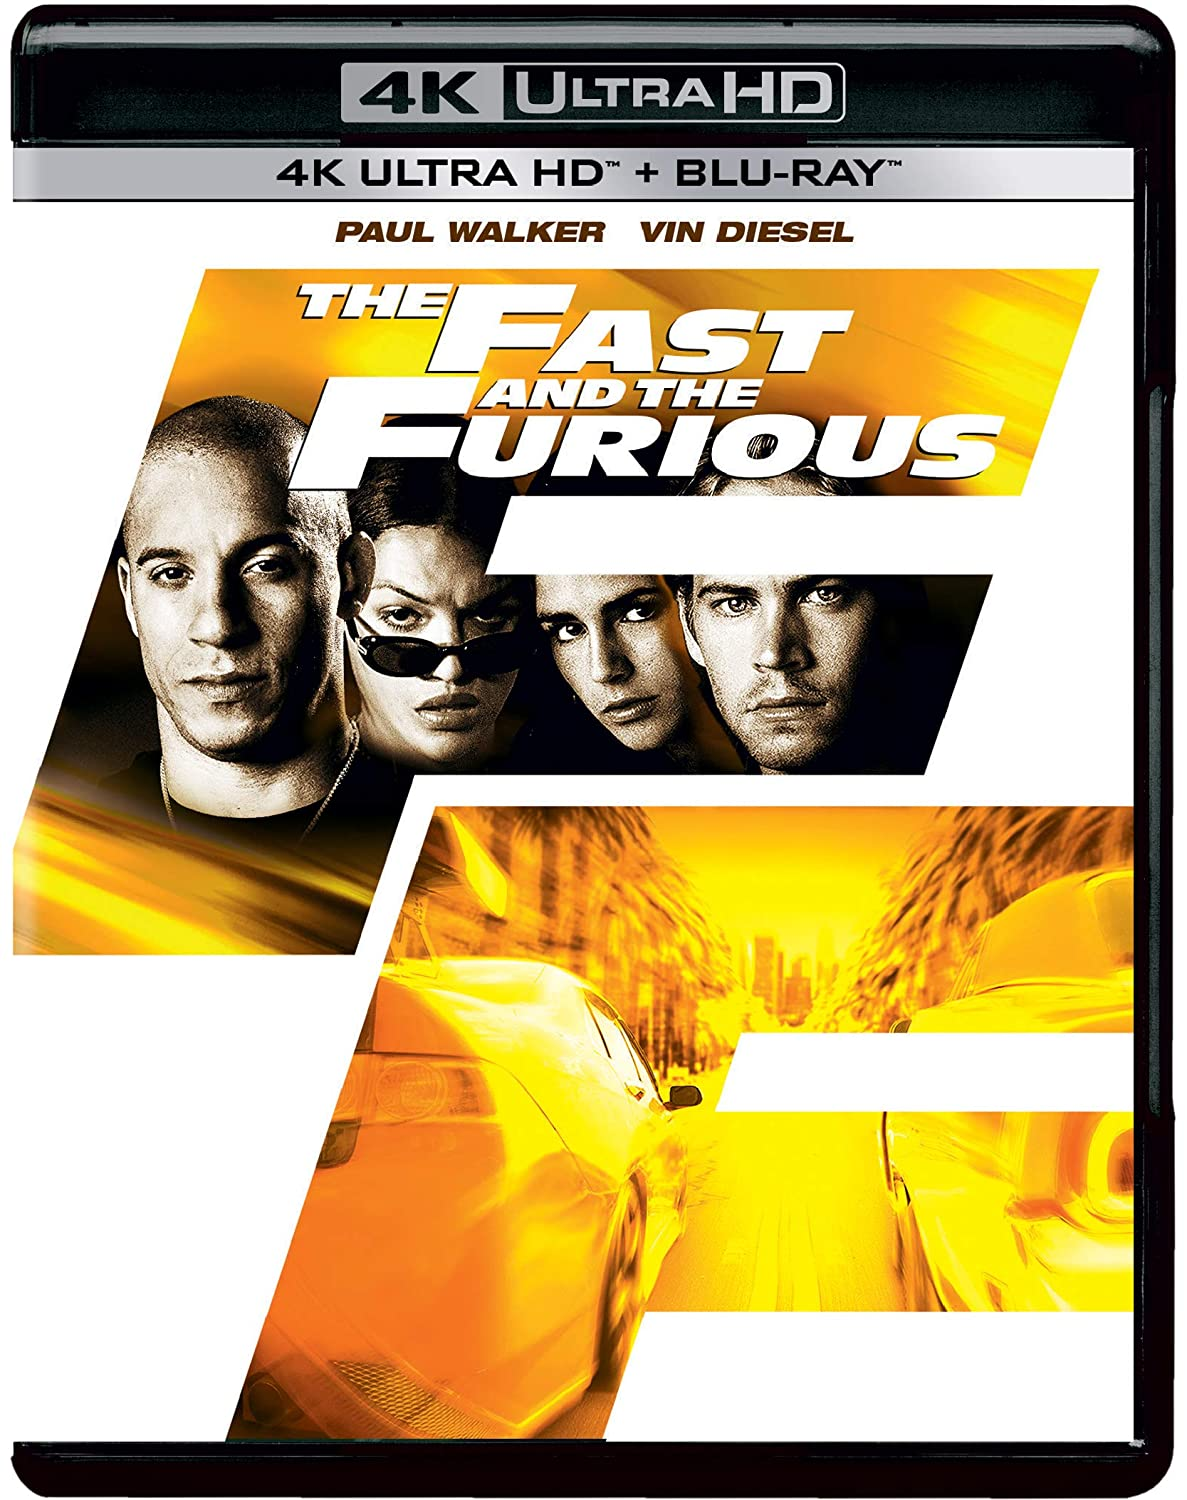 Fast Furious 1 The Fast And The Furious 2001 4k Uhd Hd 2 Disc Amazon In Paul Walker Vin Diesel Michelle Rodriguez Jordana Brewster Rick Yune Chad Lindberg Johnny Strong Rob Cohen